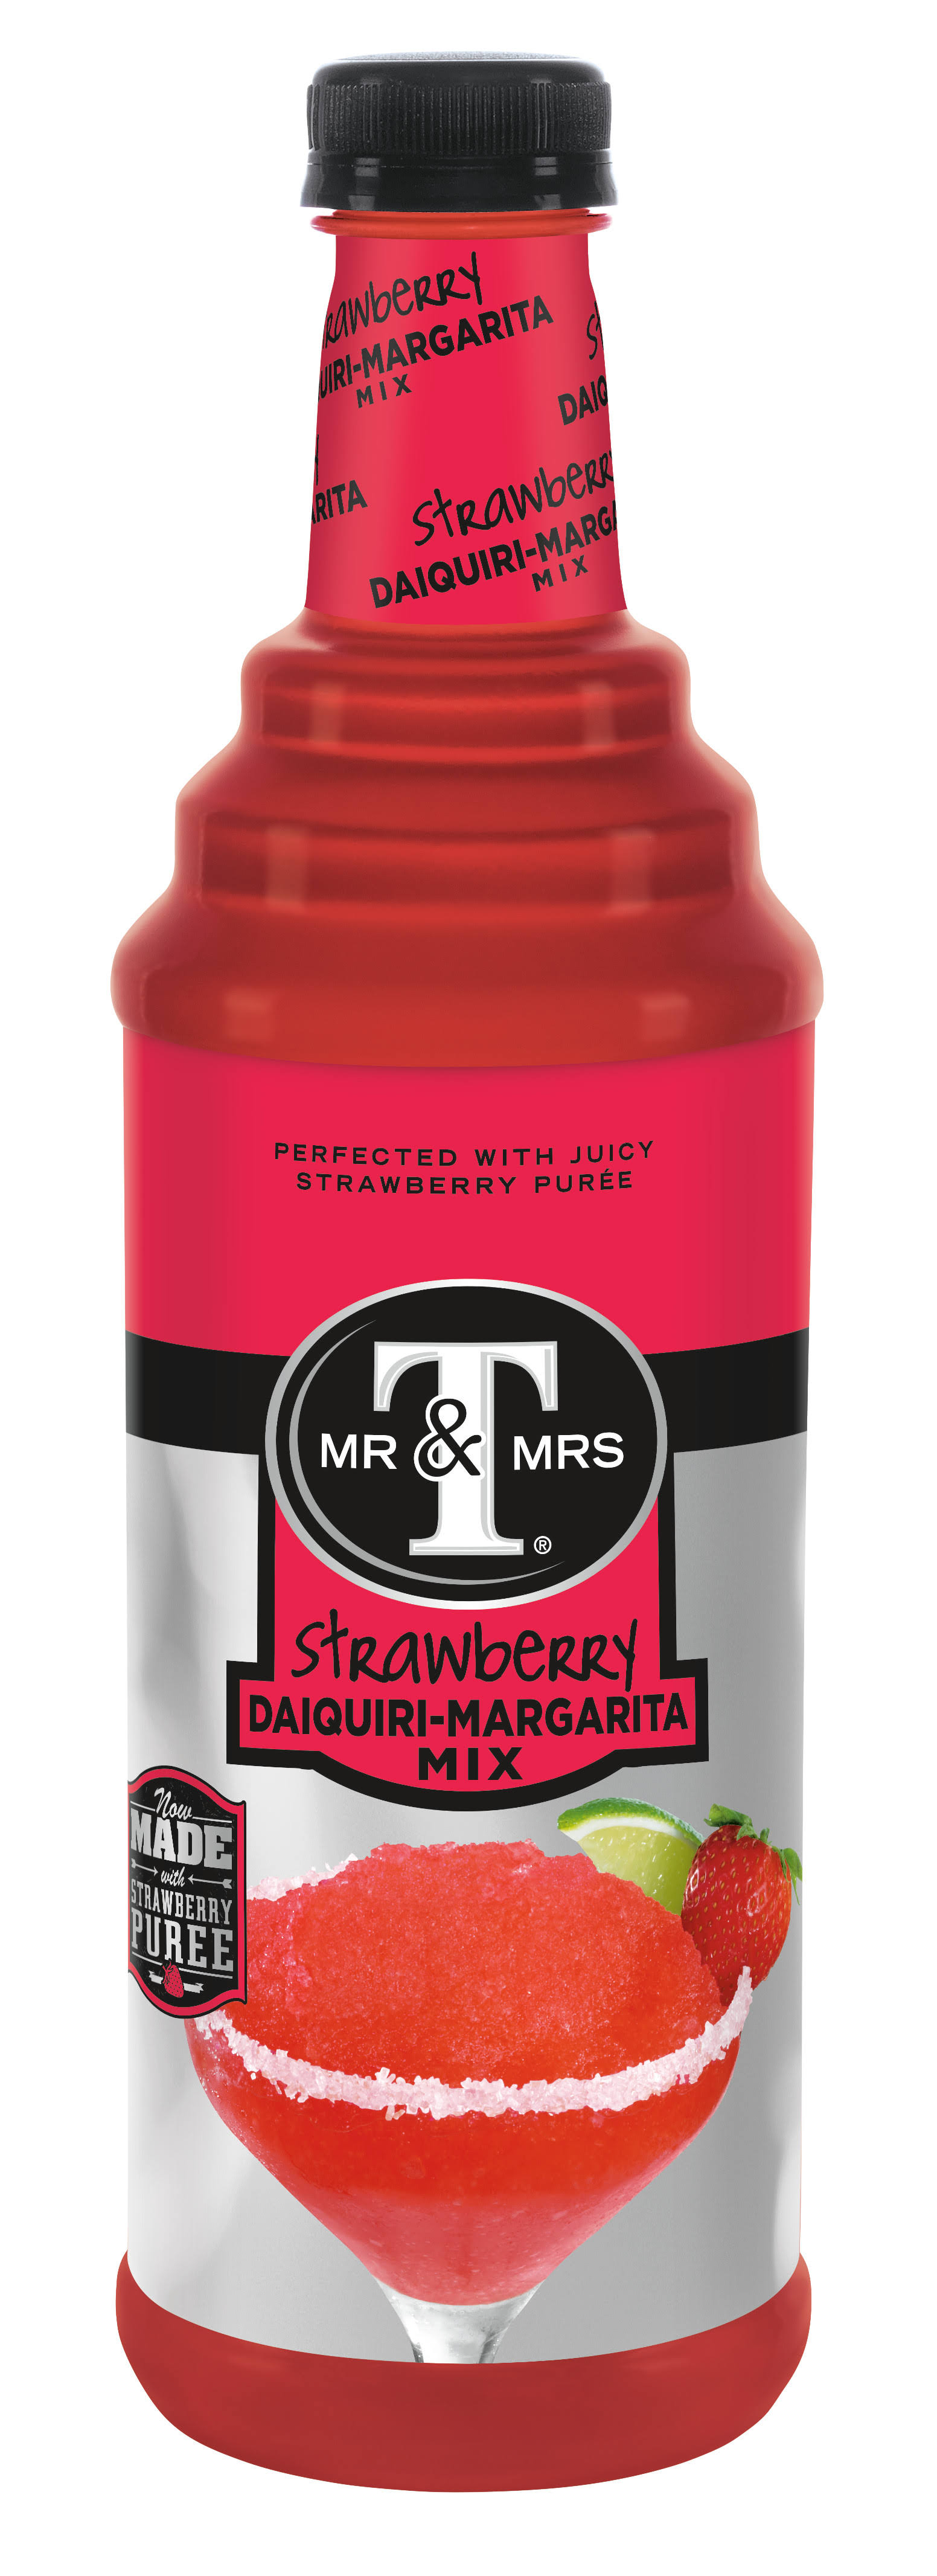 Mr & Mrs T Daiquiri-Margarita Mix, Strawberry - 1 liter 33.8 fl oz (1 qt 1.8 fl oz)